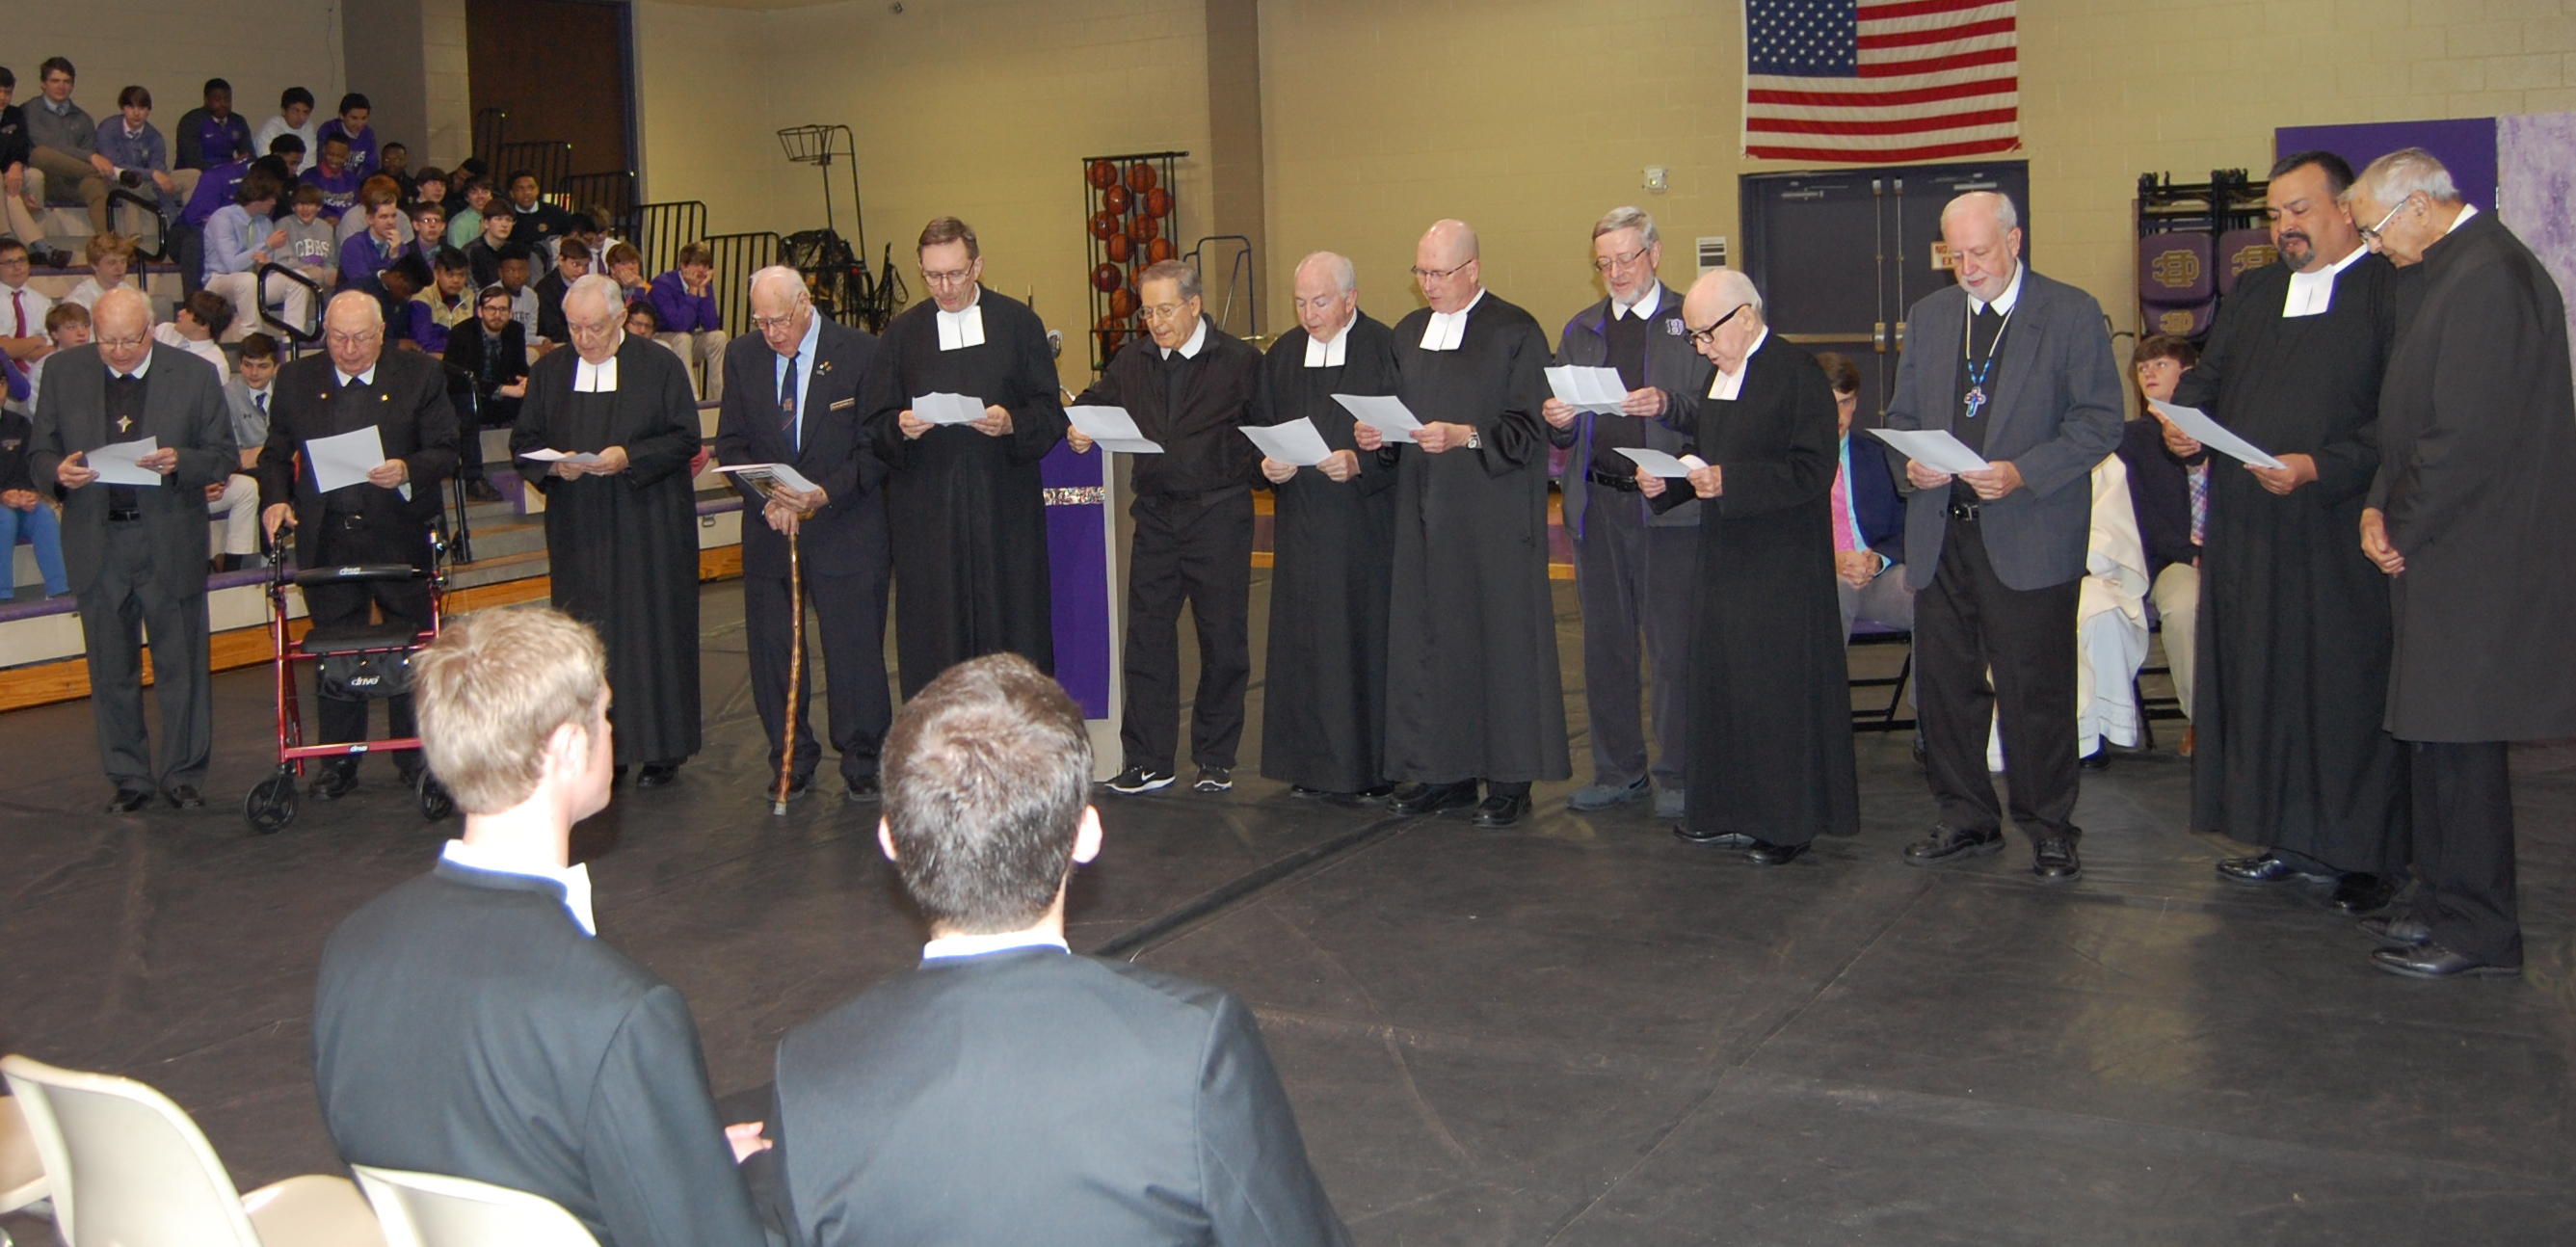 All Brothers renew their vows